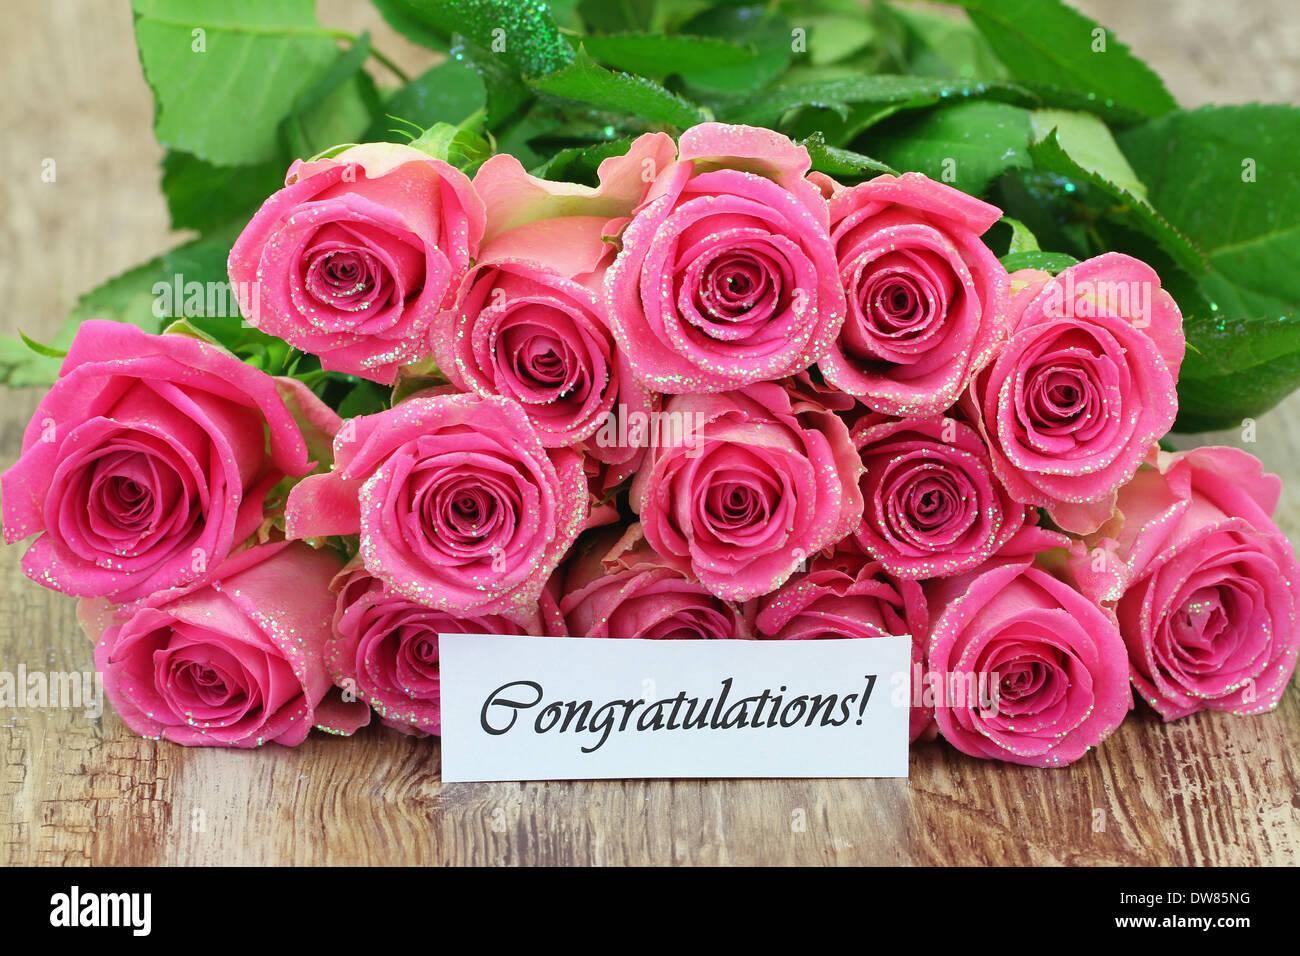 Congratulations Card With Pink Roses Bouquet With Glitter Stock